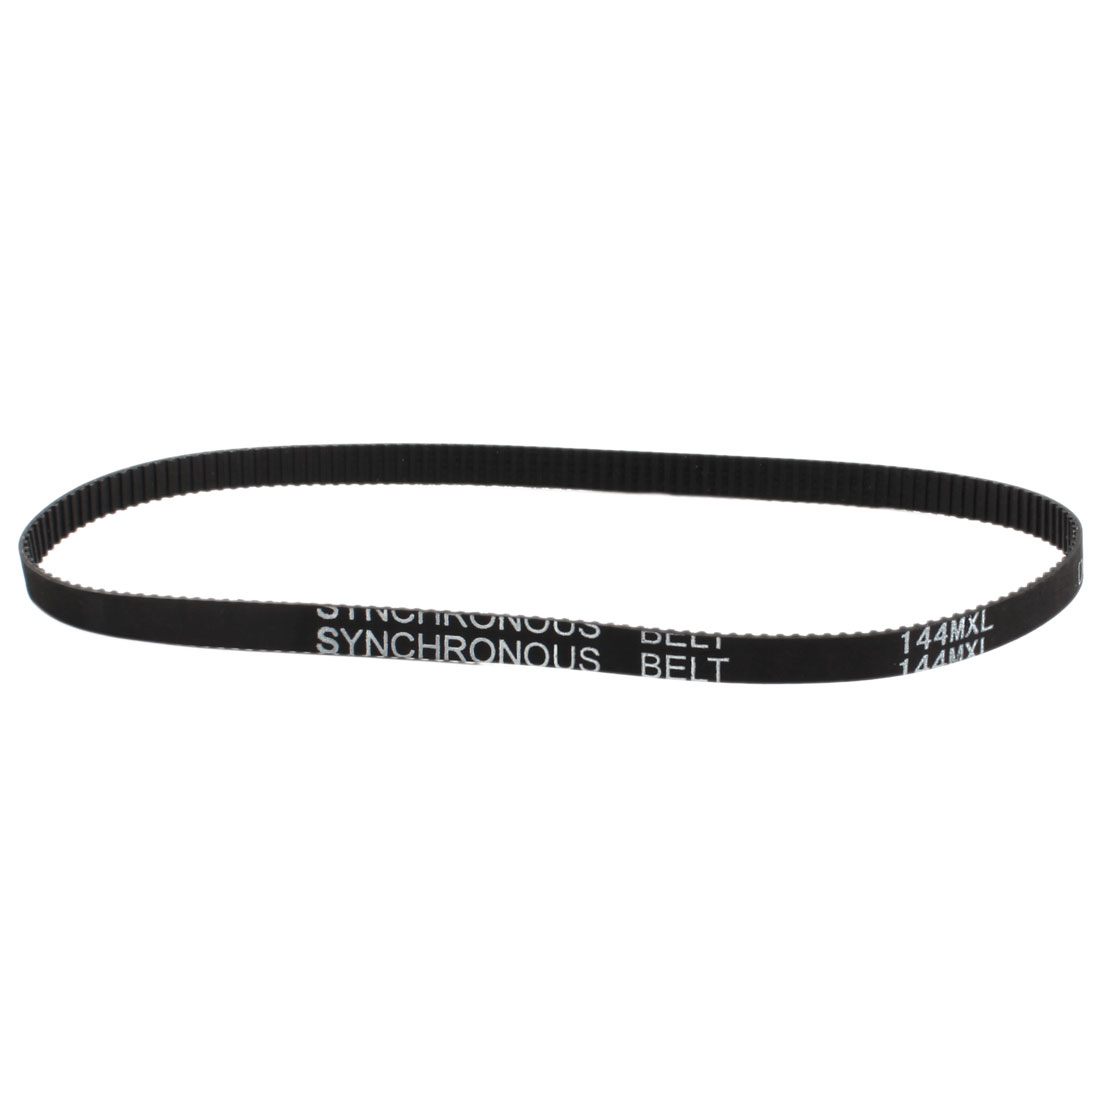 "144MXL025 180-Tooth 2.032mm Pitch 6.4mm Wide Black Groove Cogged Stepper Motor Synchronous Timing Belt 14.4"" Girth"